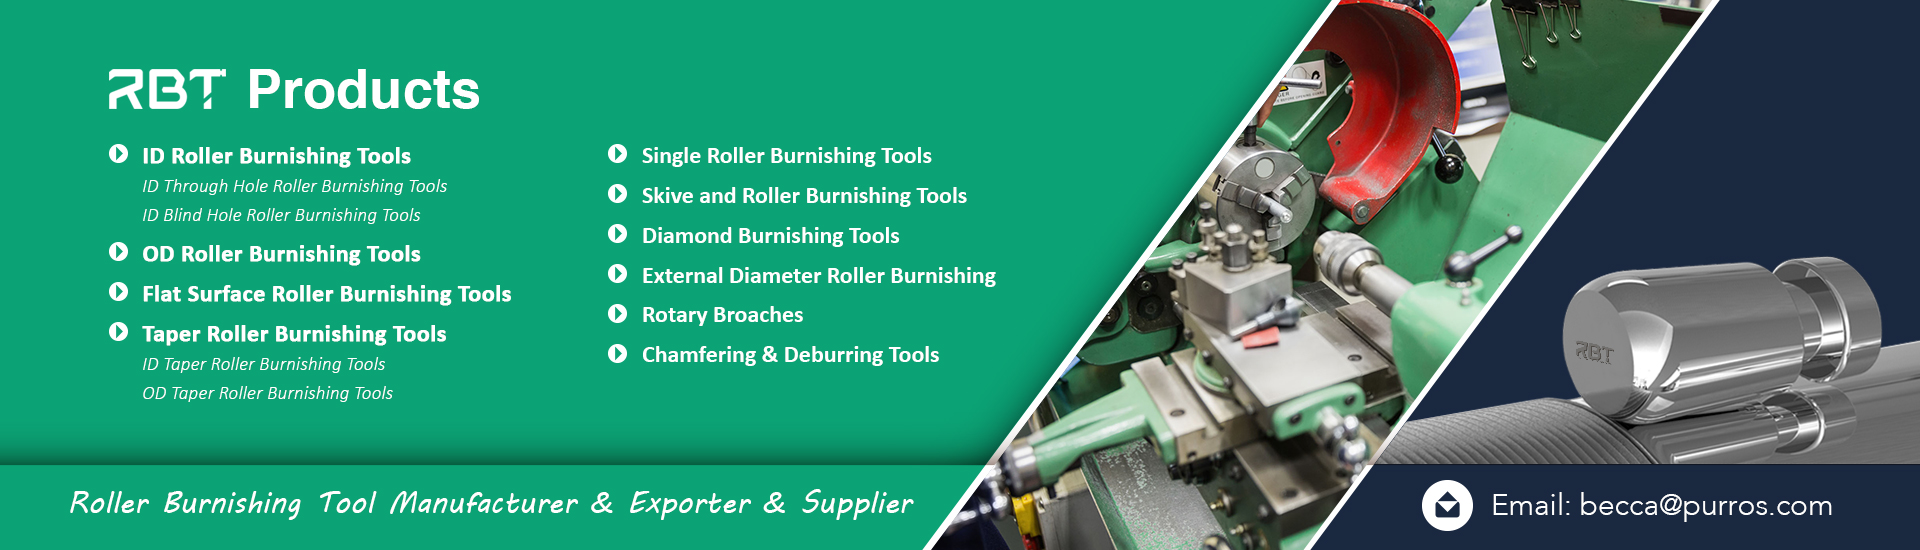 Roller Burnishing Tools Exporter